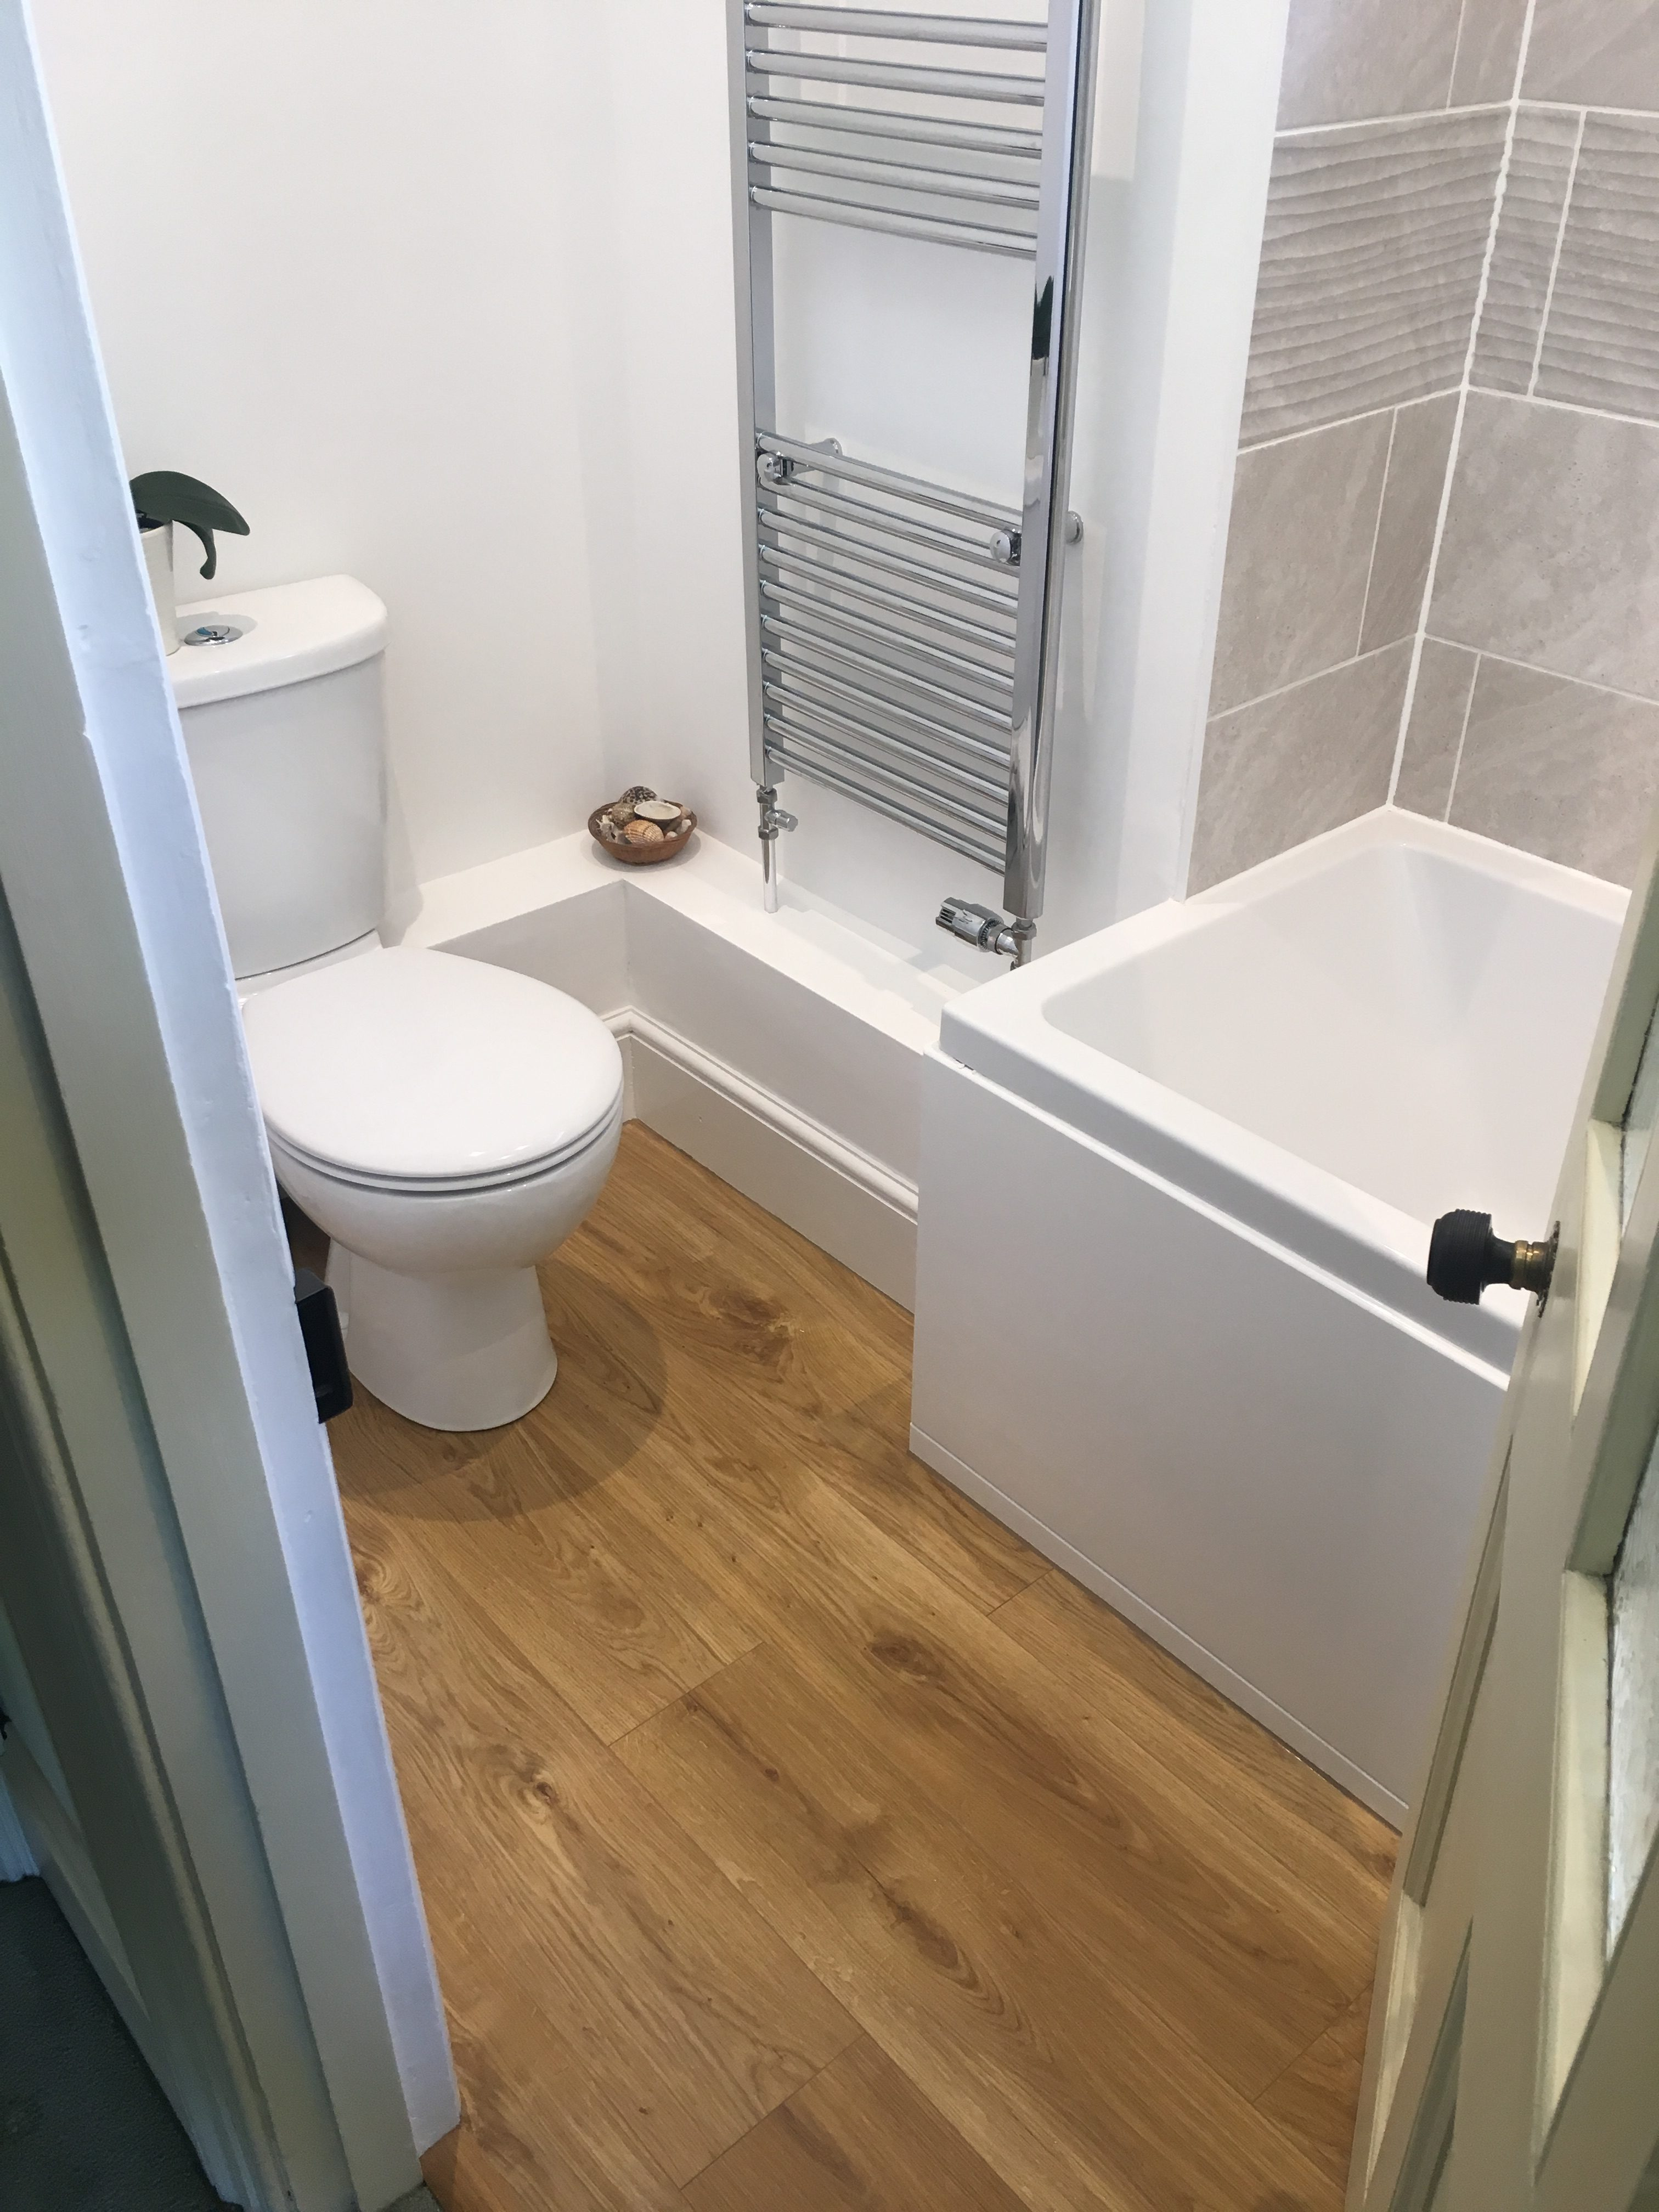 Toilet, bath and towel radiator from the doorway